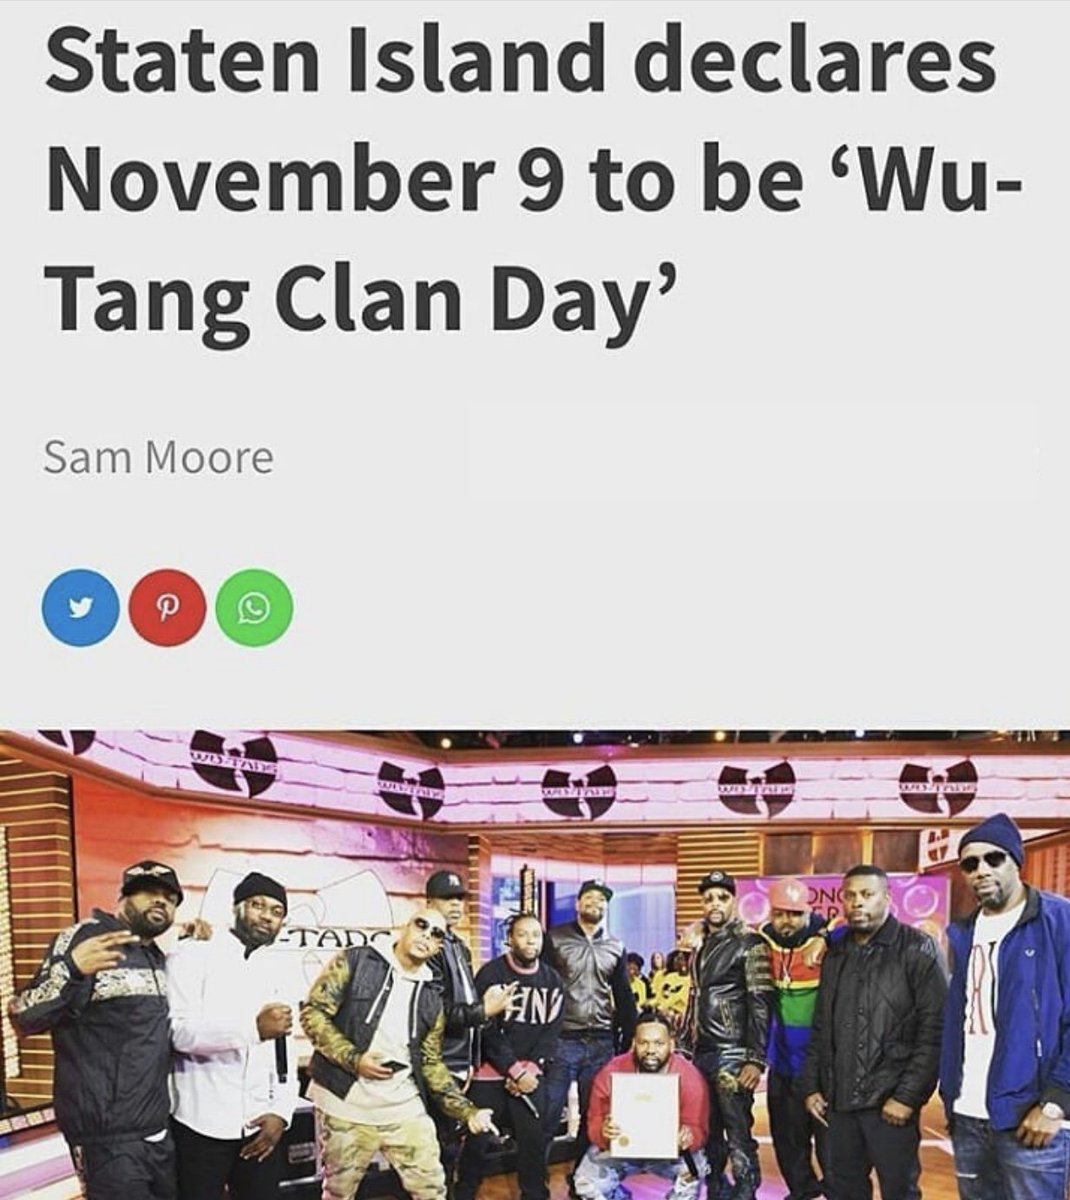 RT @RZA: EPIC. #WuTang https://t.co/J4ploR13LK